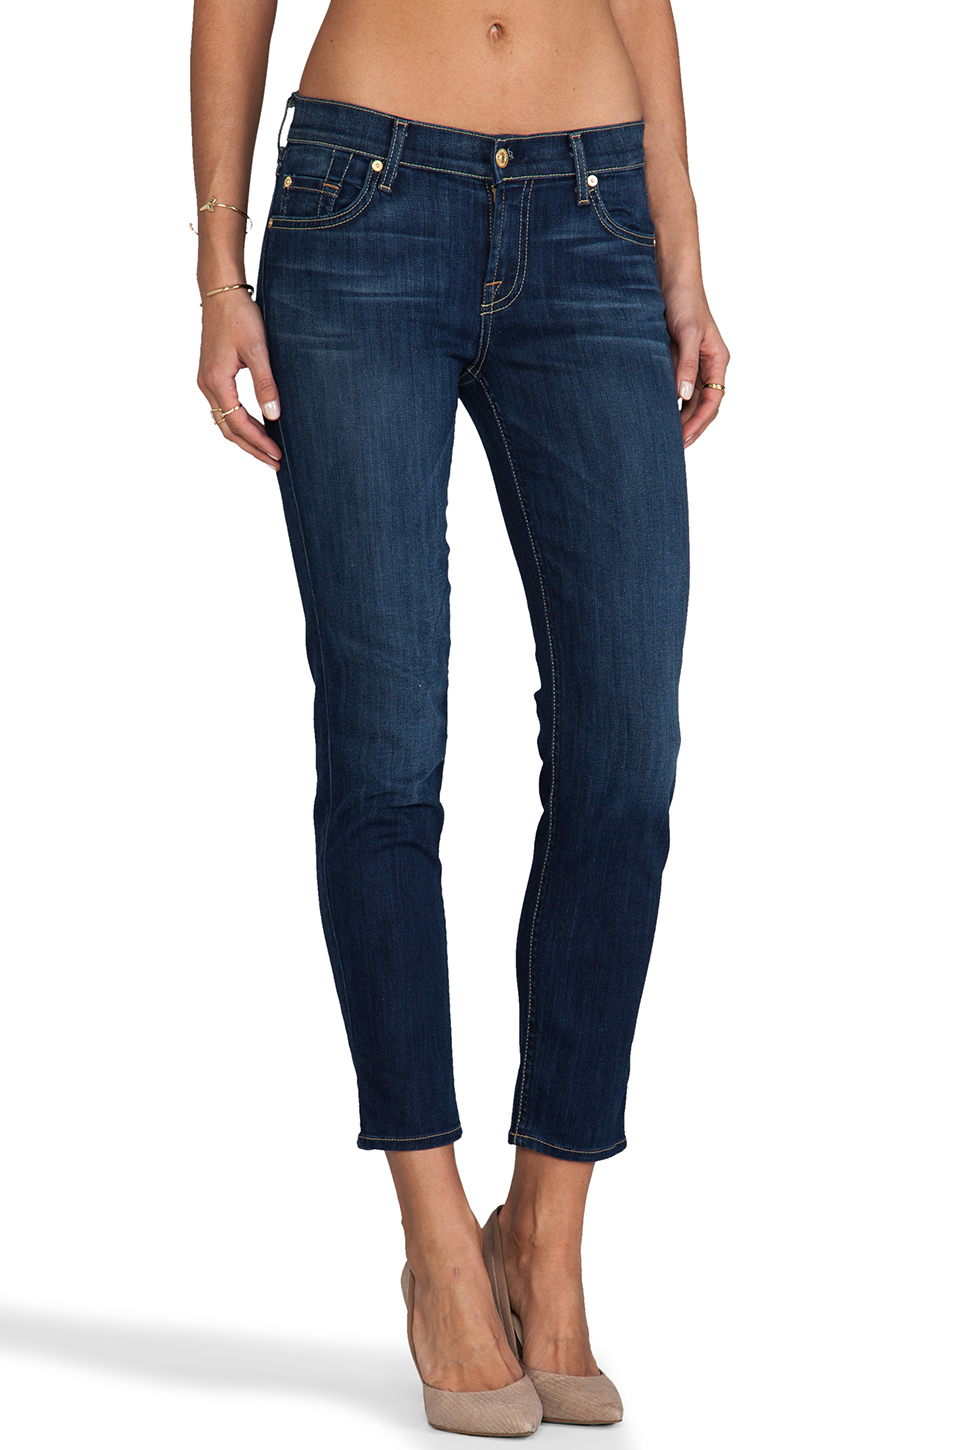 7 For All Mankind Crop Slim Cigarette in Radiant Medium Blue